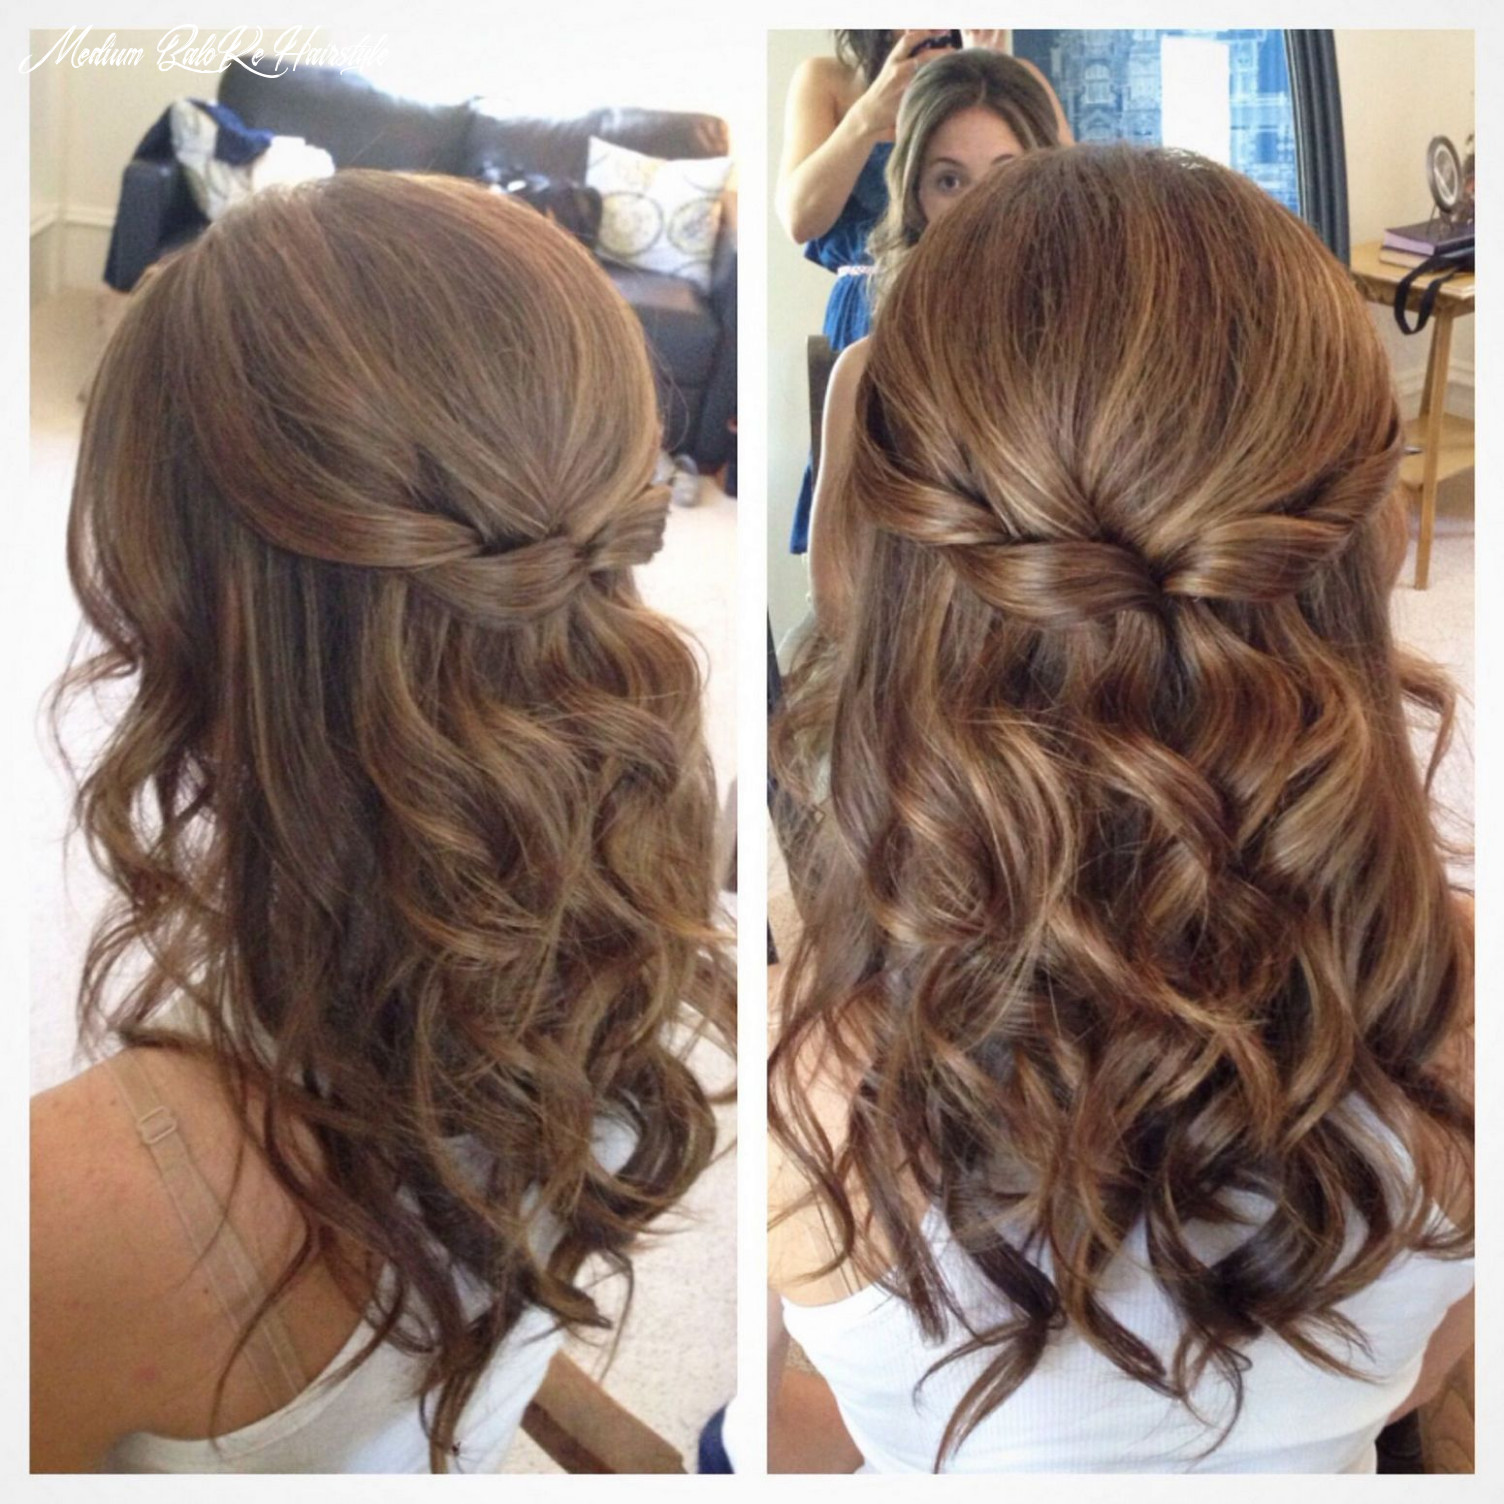 For more pins like this, follow me @ihaveaname   hair lengths